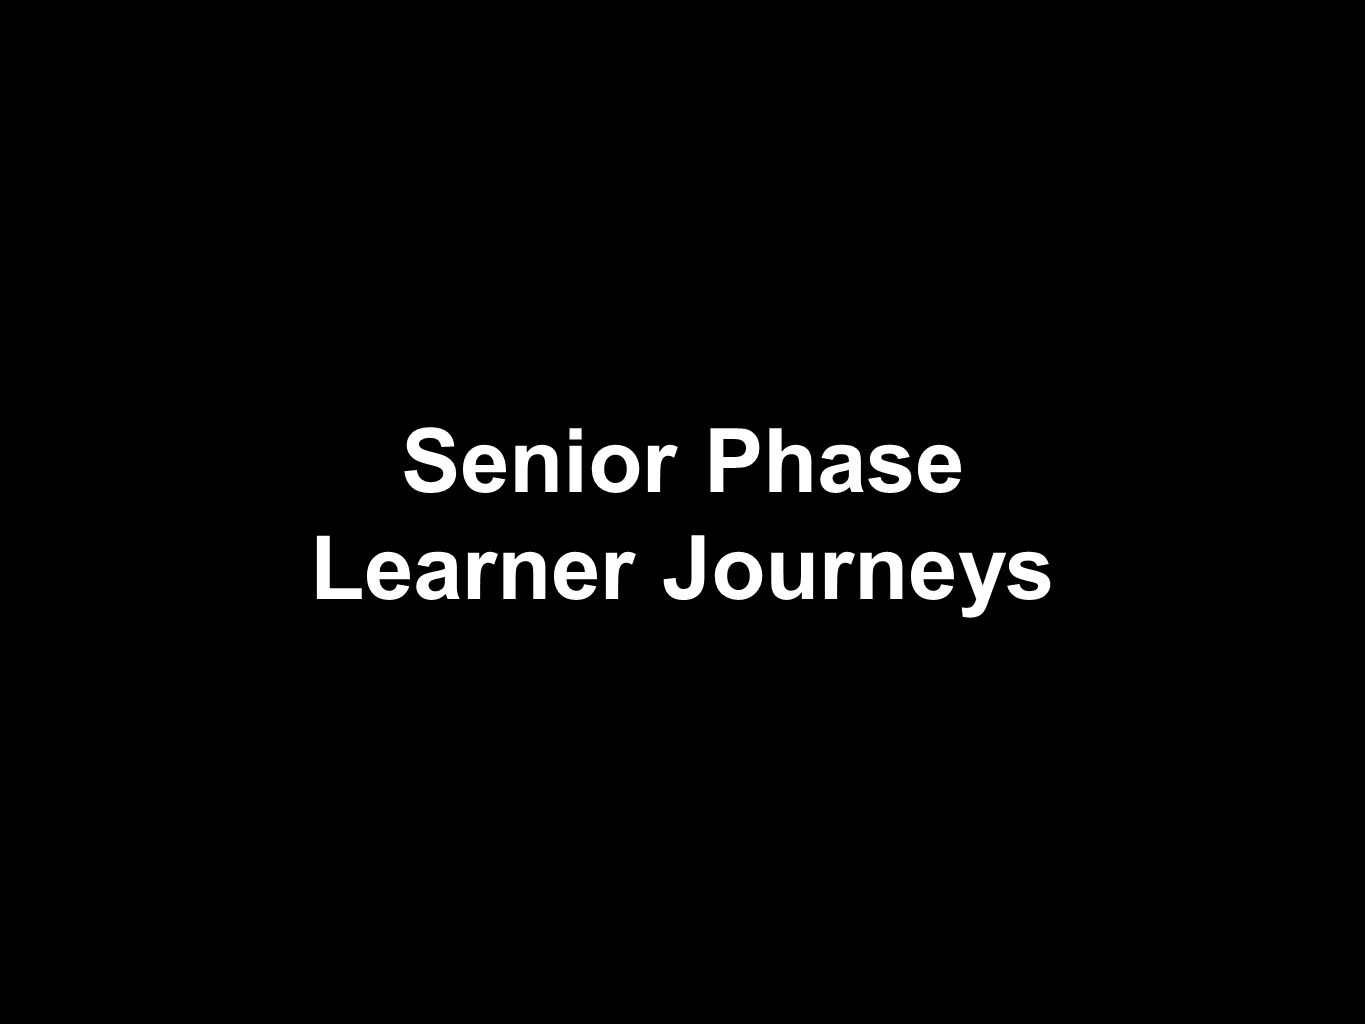 Senior Phase Learner Journeys